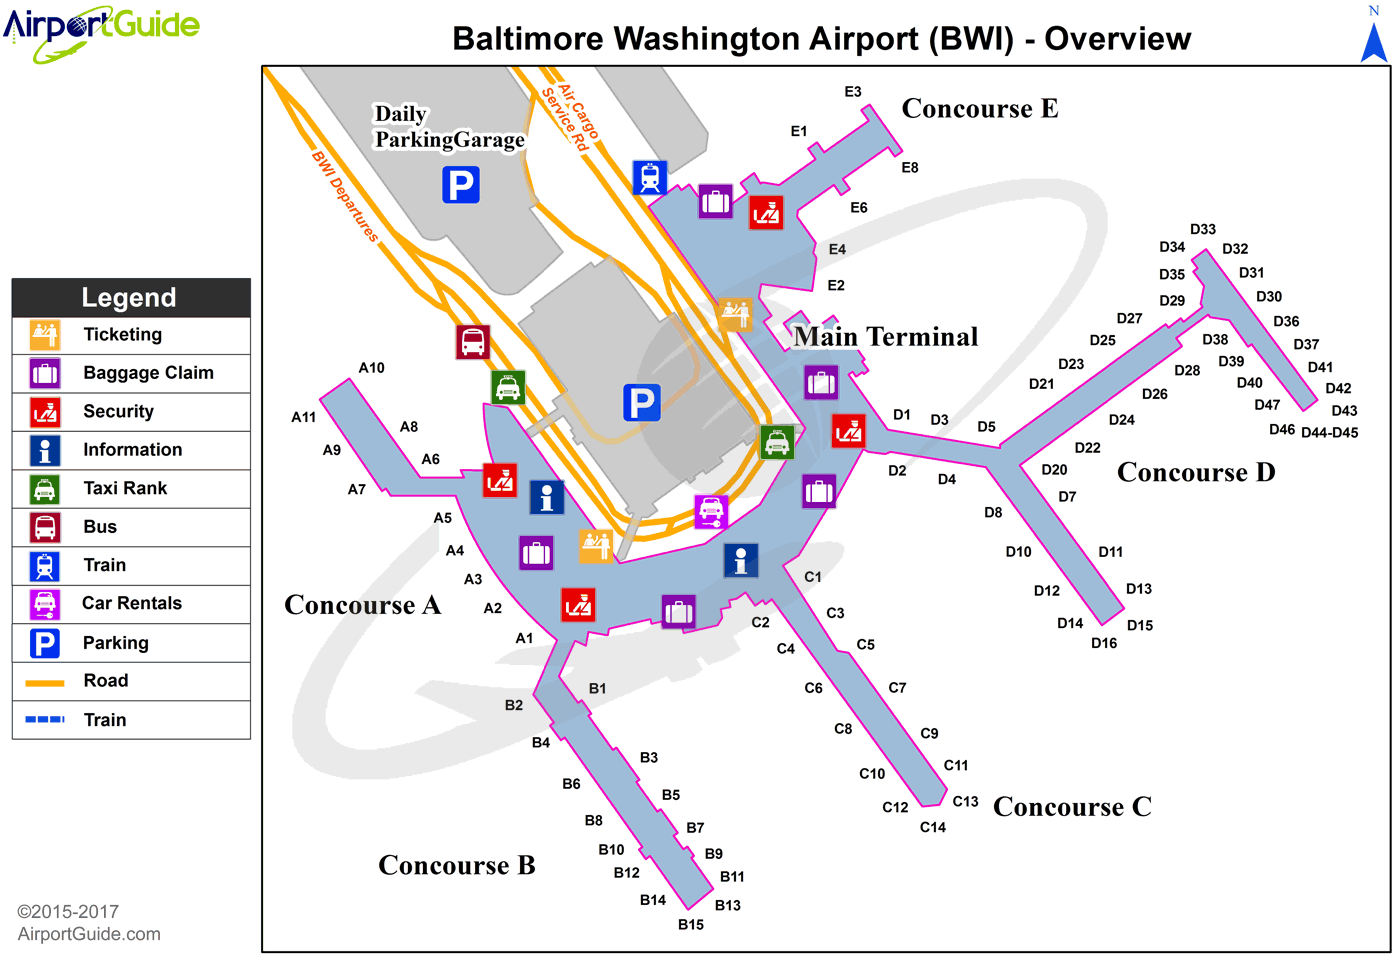 Baltimore - Baltimore/Washington International Thurgood Marshall (BWI) Airport Terminal Map - Overview